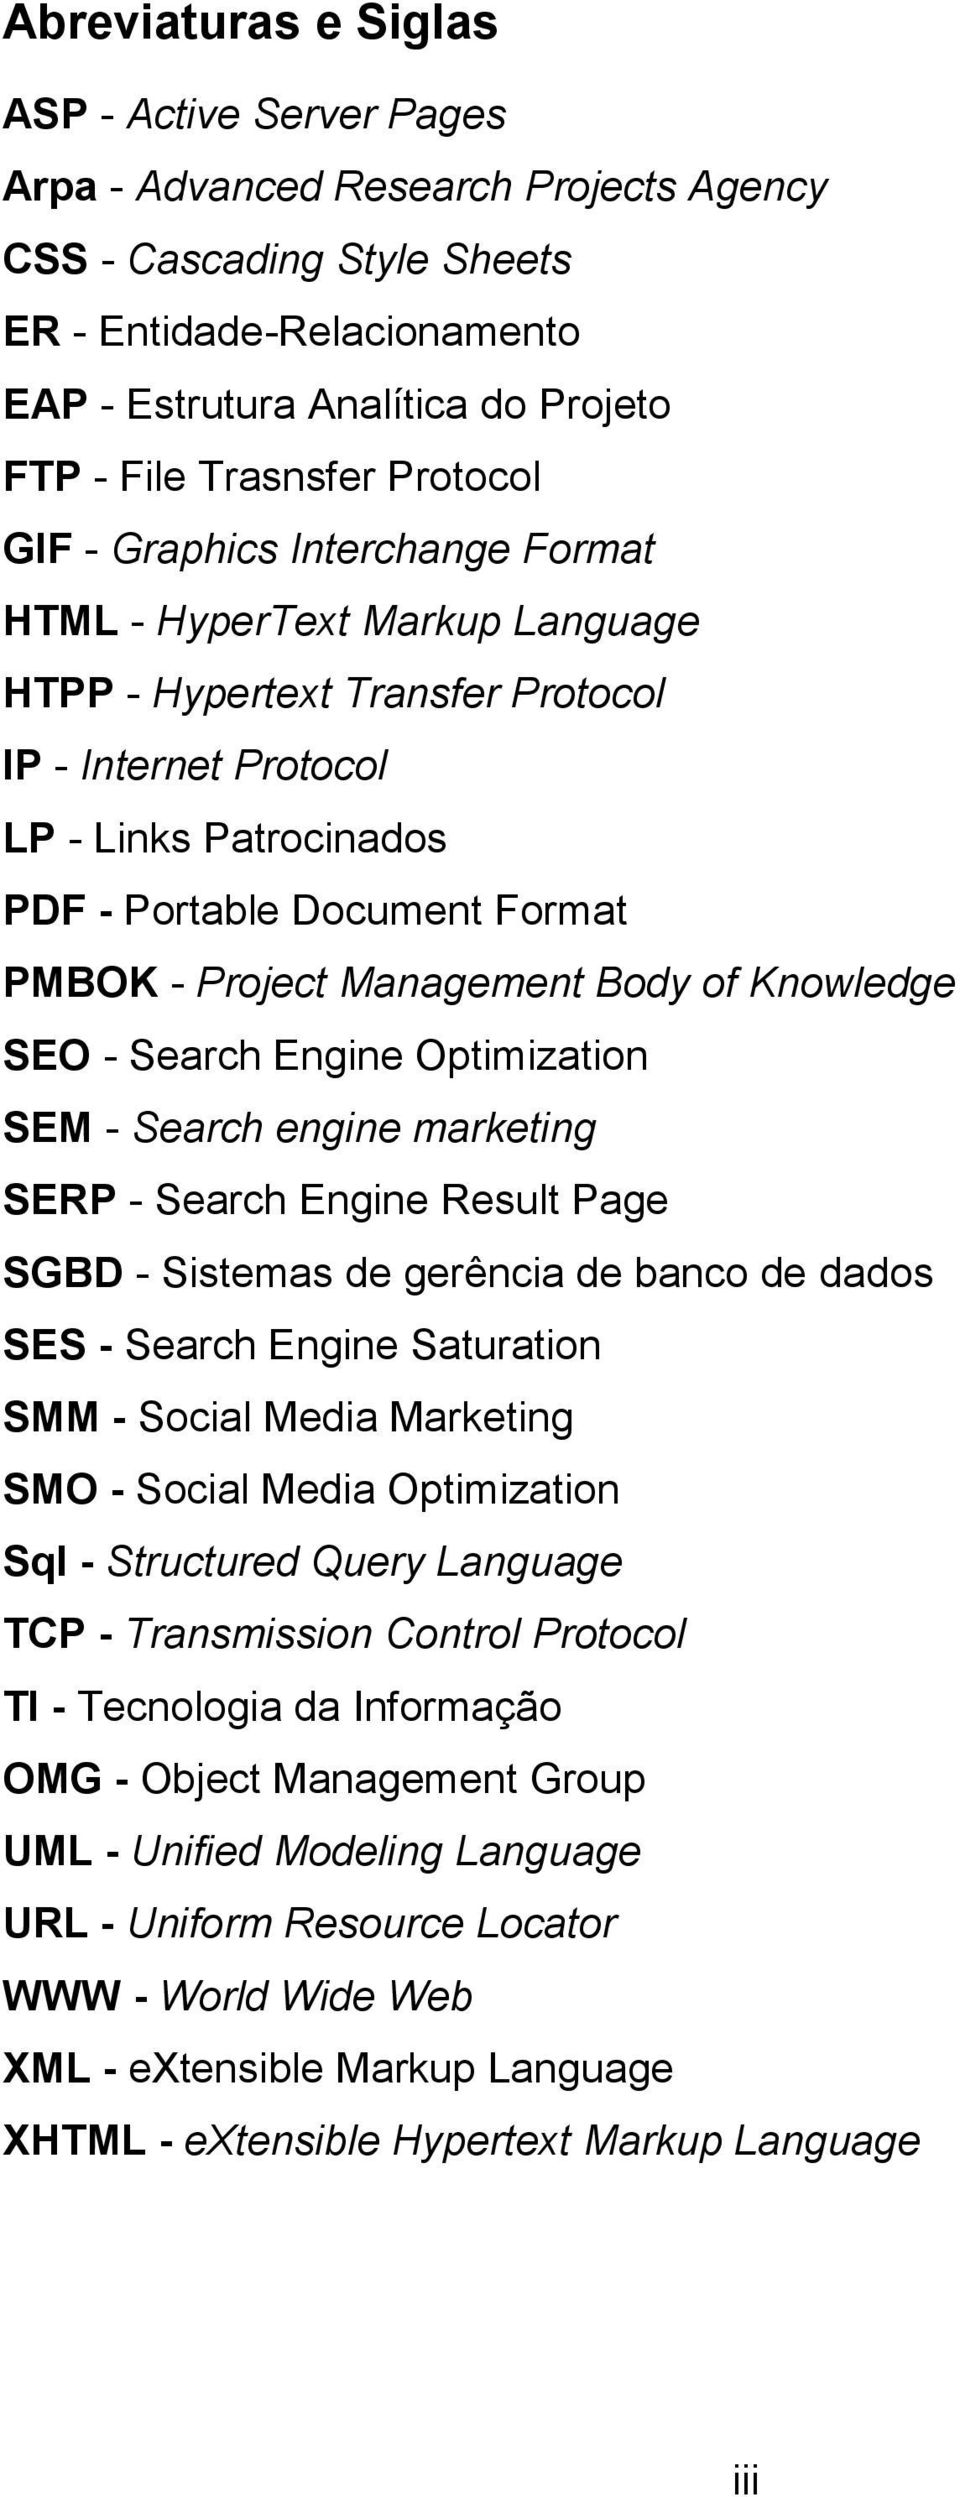 PMBOK - Project Management Body of Knowledge SEO - Search Engine Optimization SEM - Search engine marketing SERP - Search Engine Result Page SGBD - Sistemas de gerência de banco de dados SES - Search